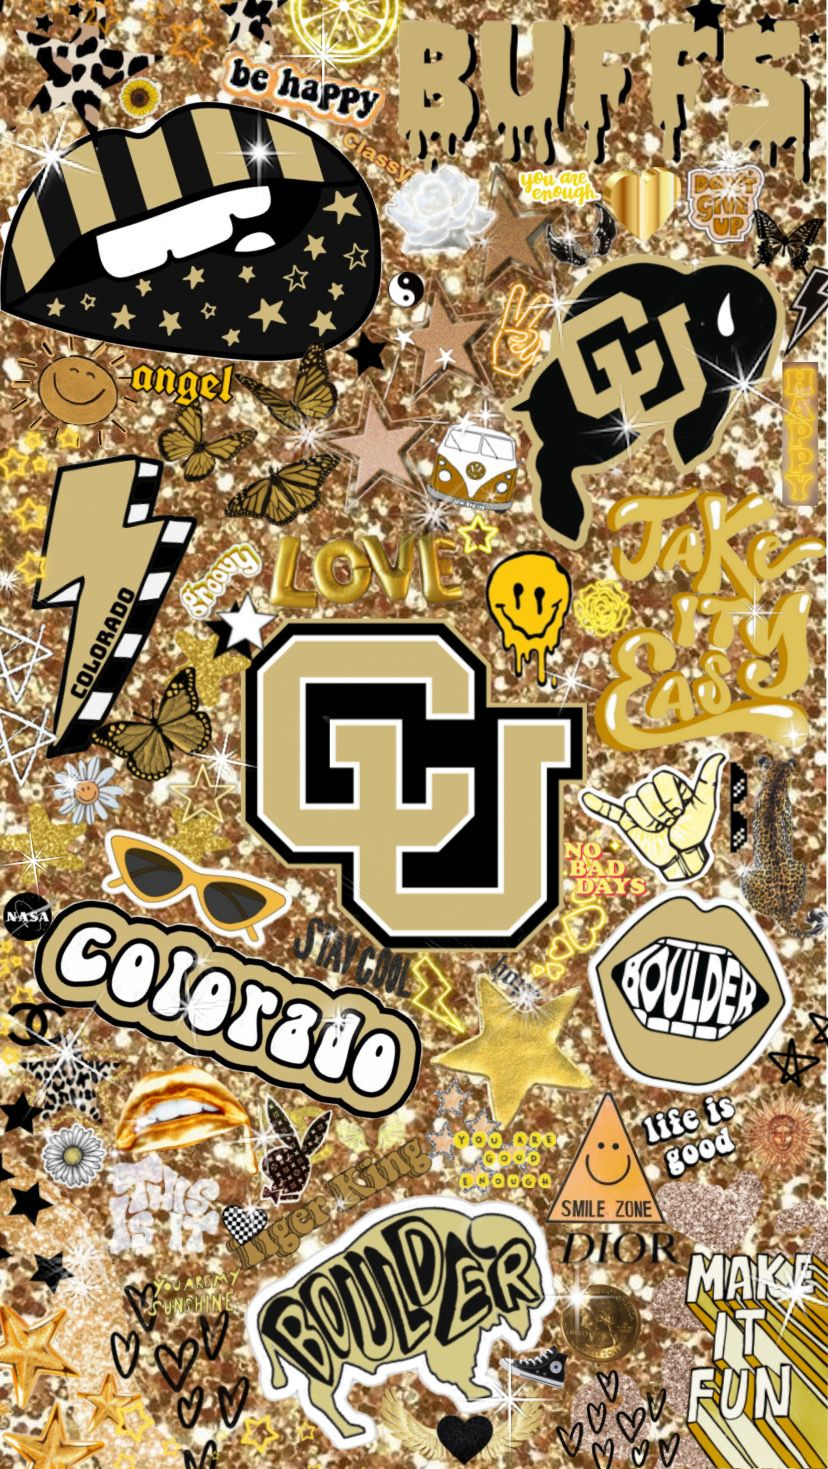 University Of Colorado Boulder Collage In 2020 University Of Colorado Boulder University Of Colorado Bouldering